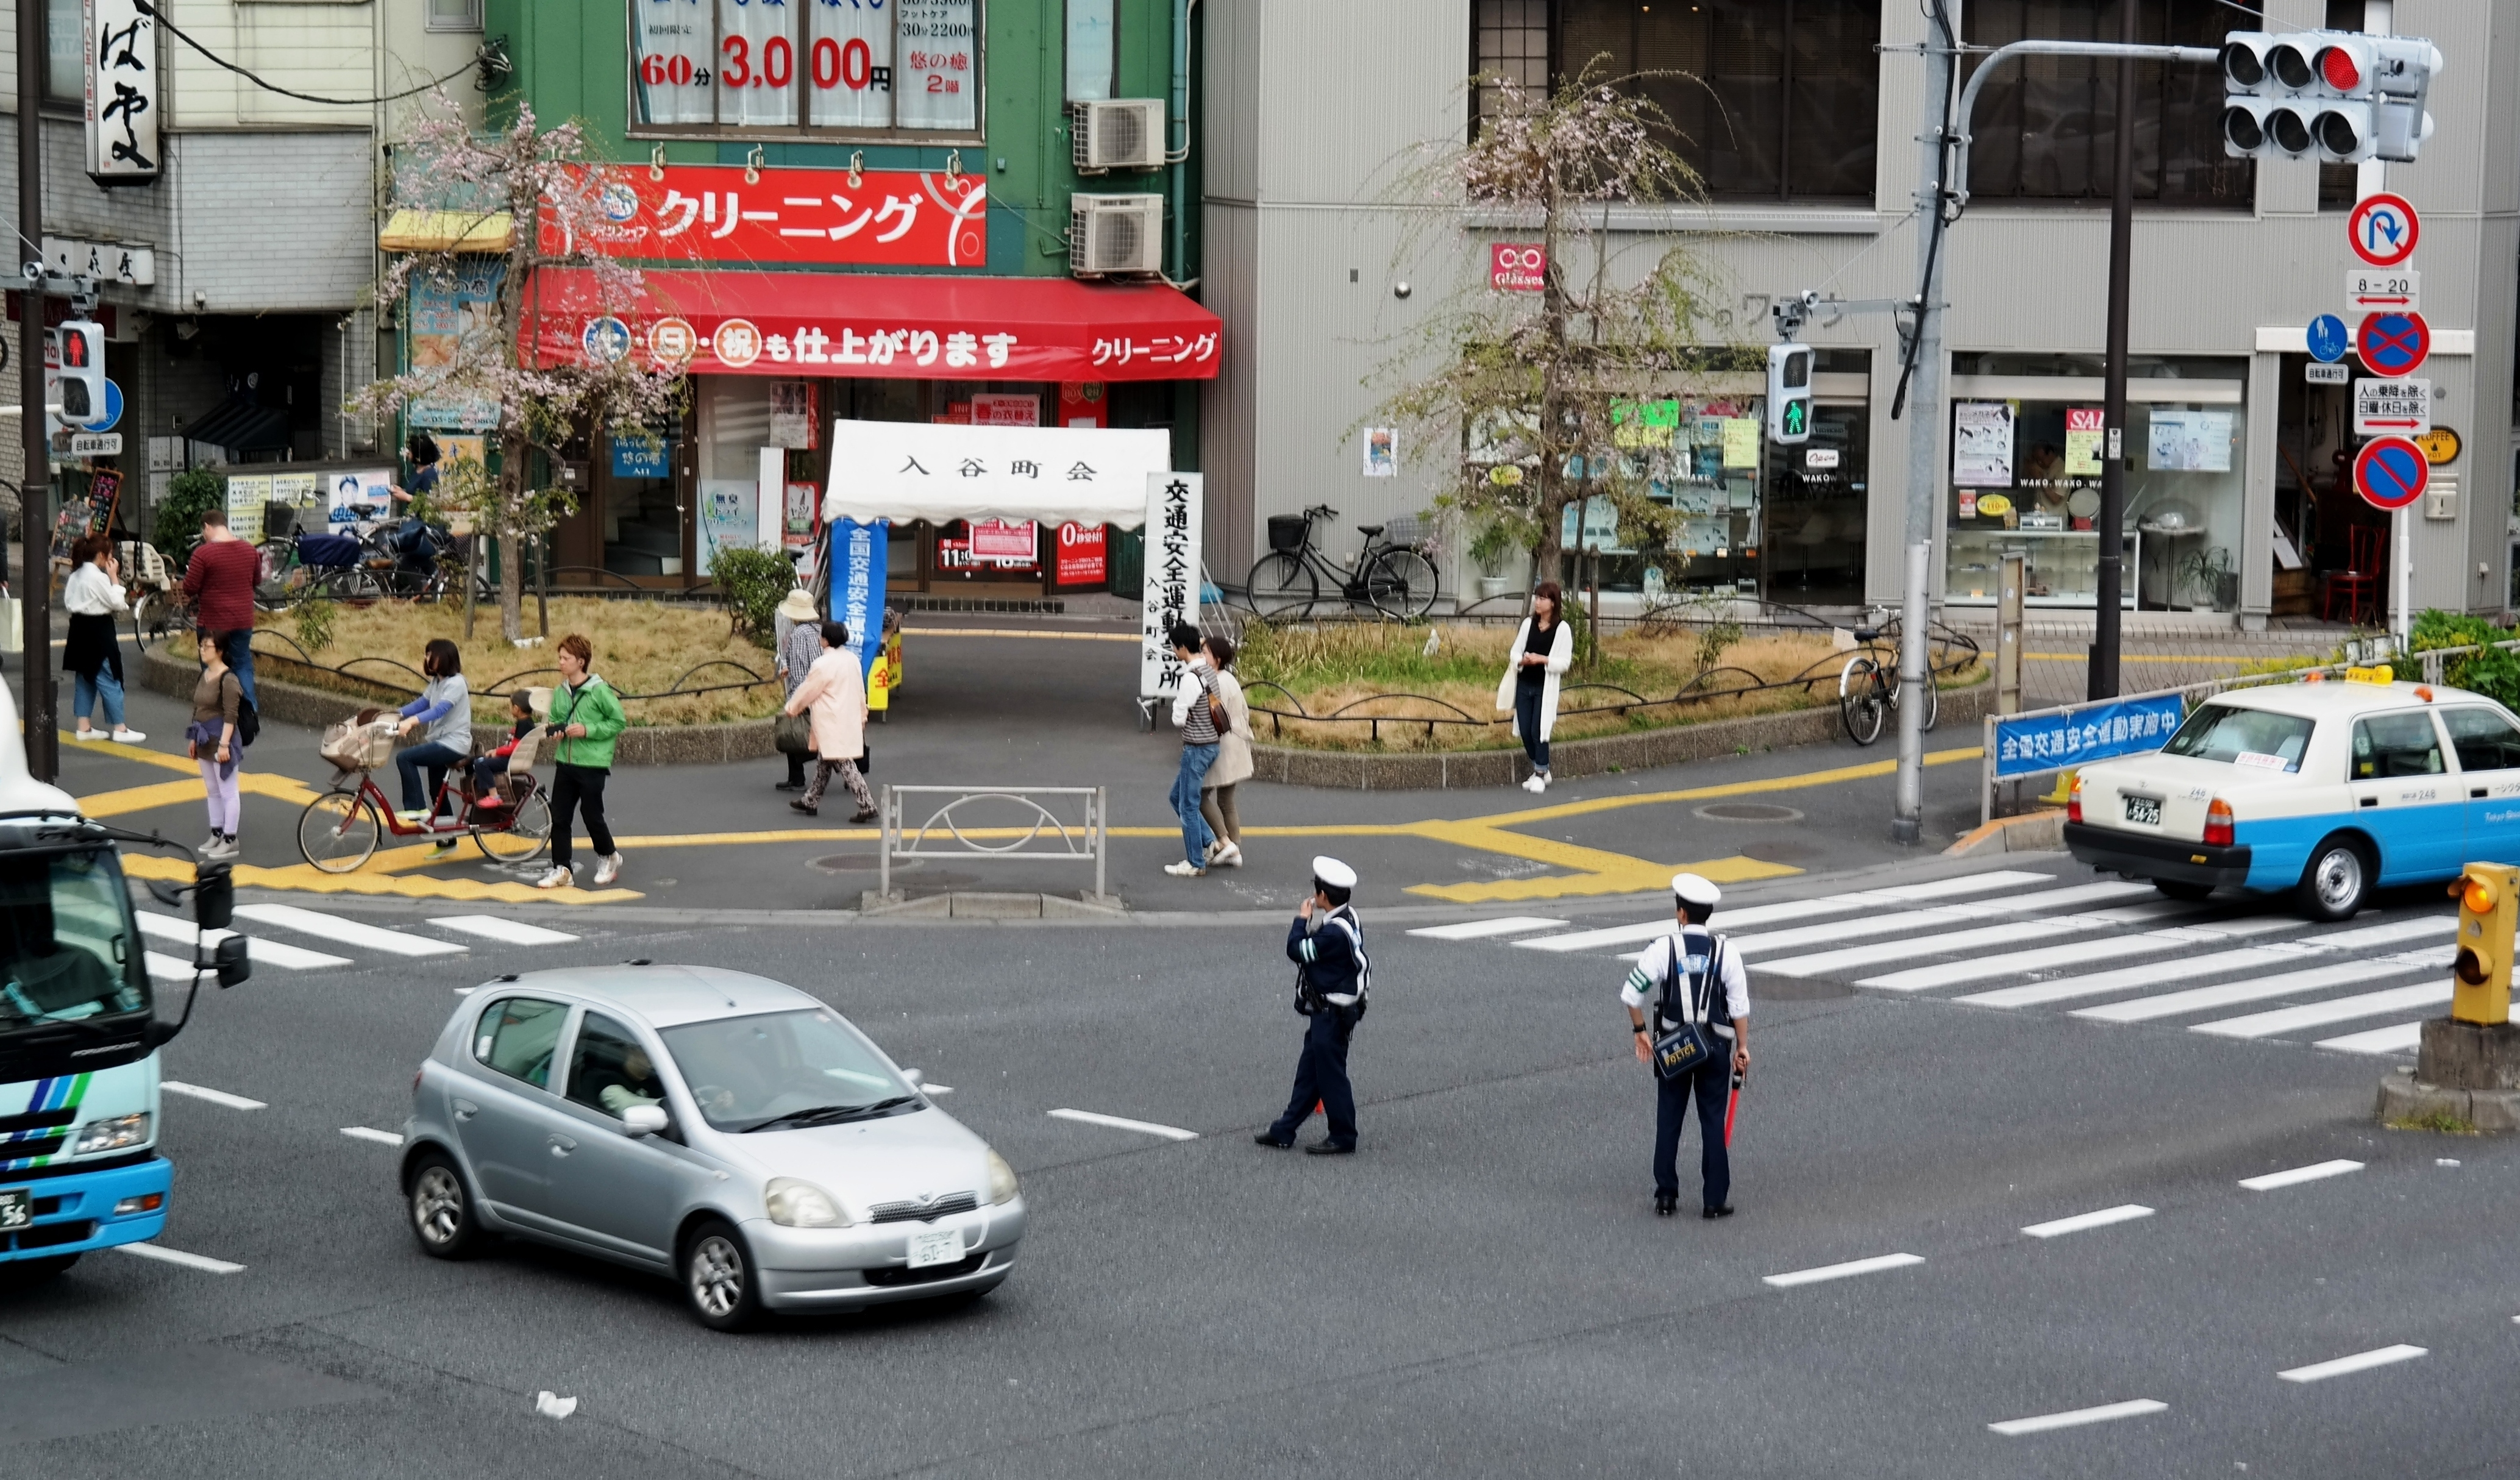 Cops - and traffic lights - directing traffic in Tokyo by kirsten bukager